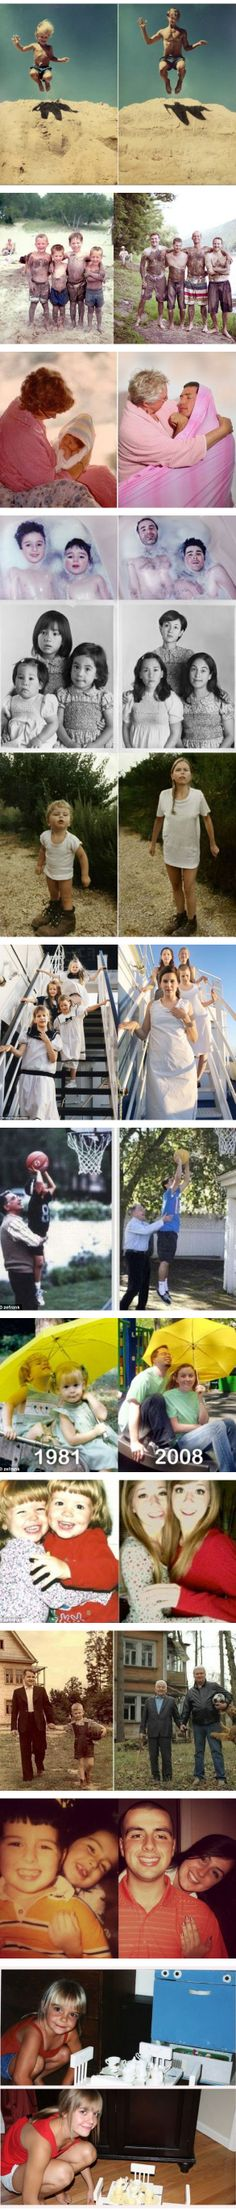 Recreating Childhood Photos....might have to do this.